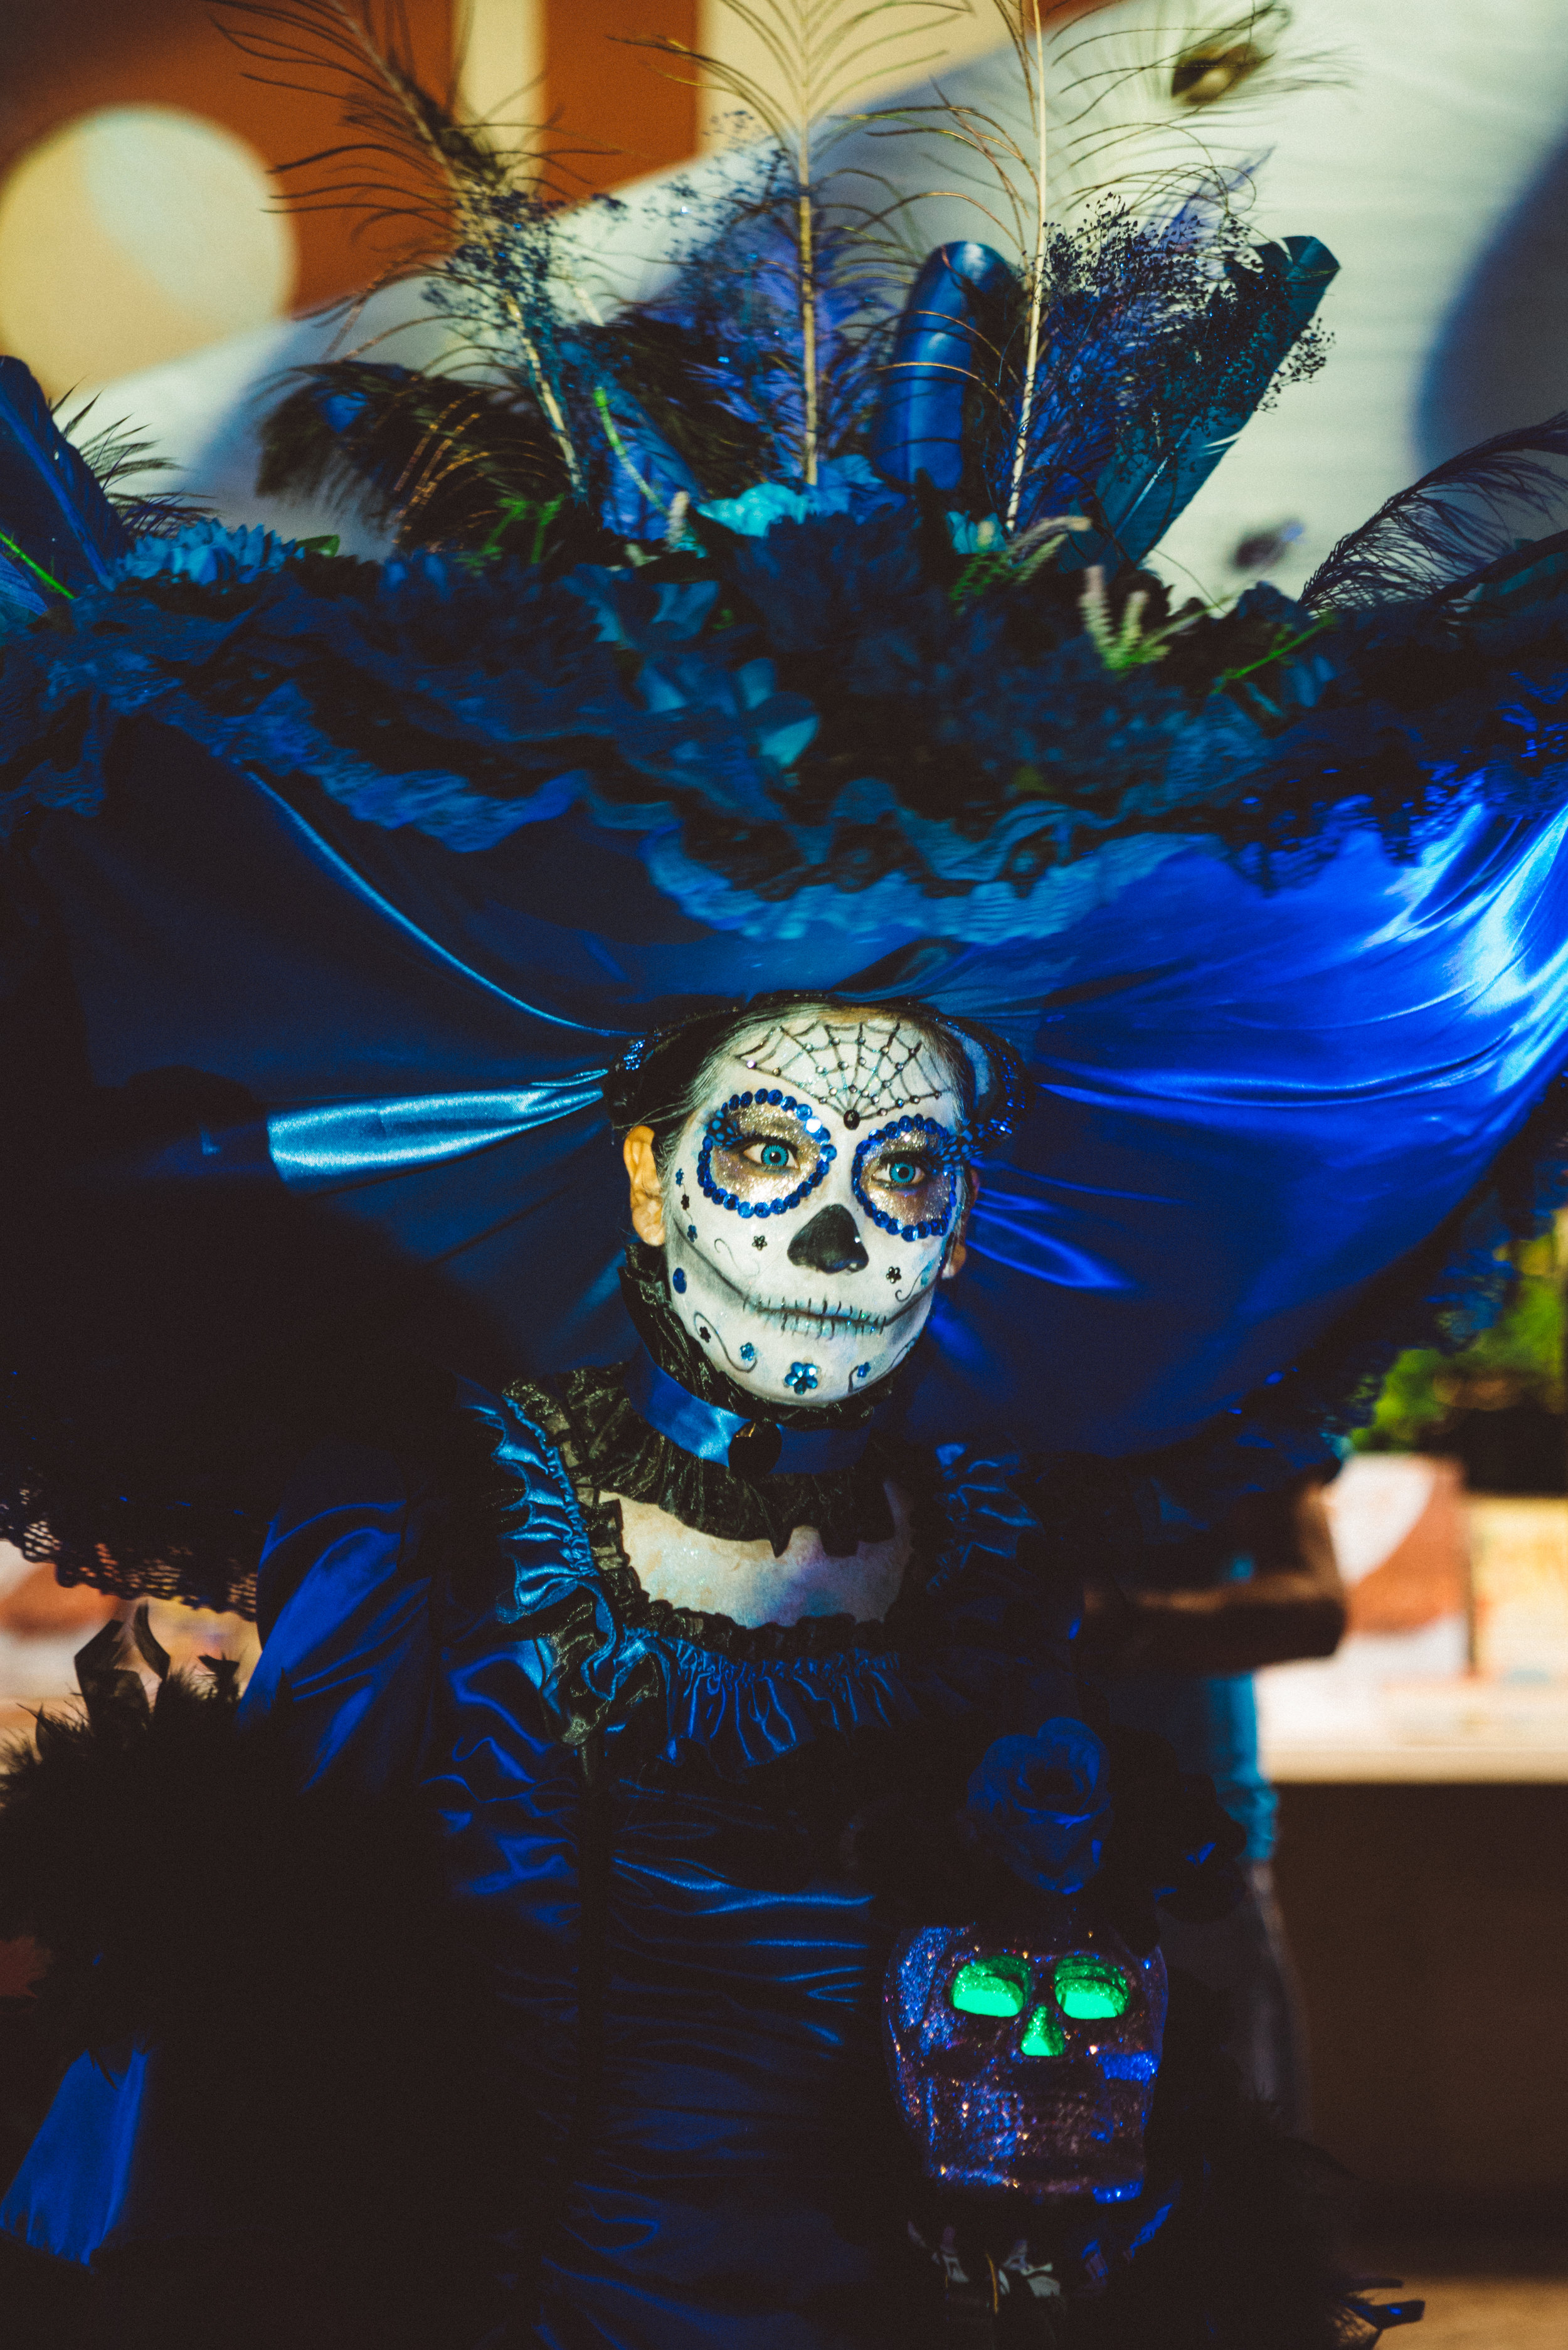 There was a best Catrina contest going on that night, and throughout the night the contestants would walk around showing off their costumes. At the end of the night they paraded the stage.